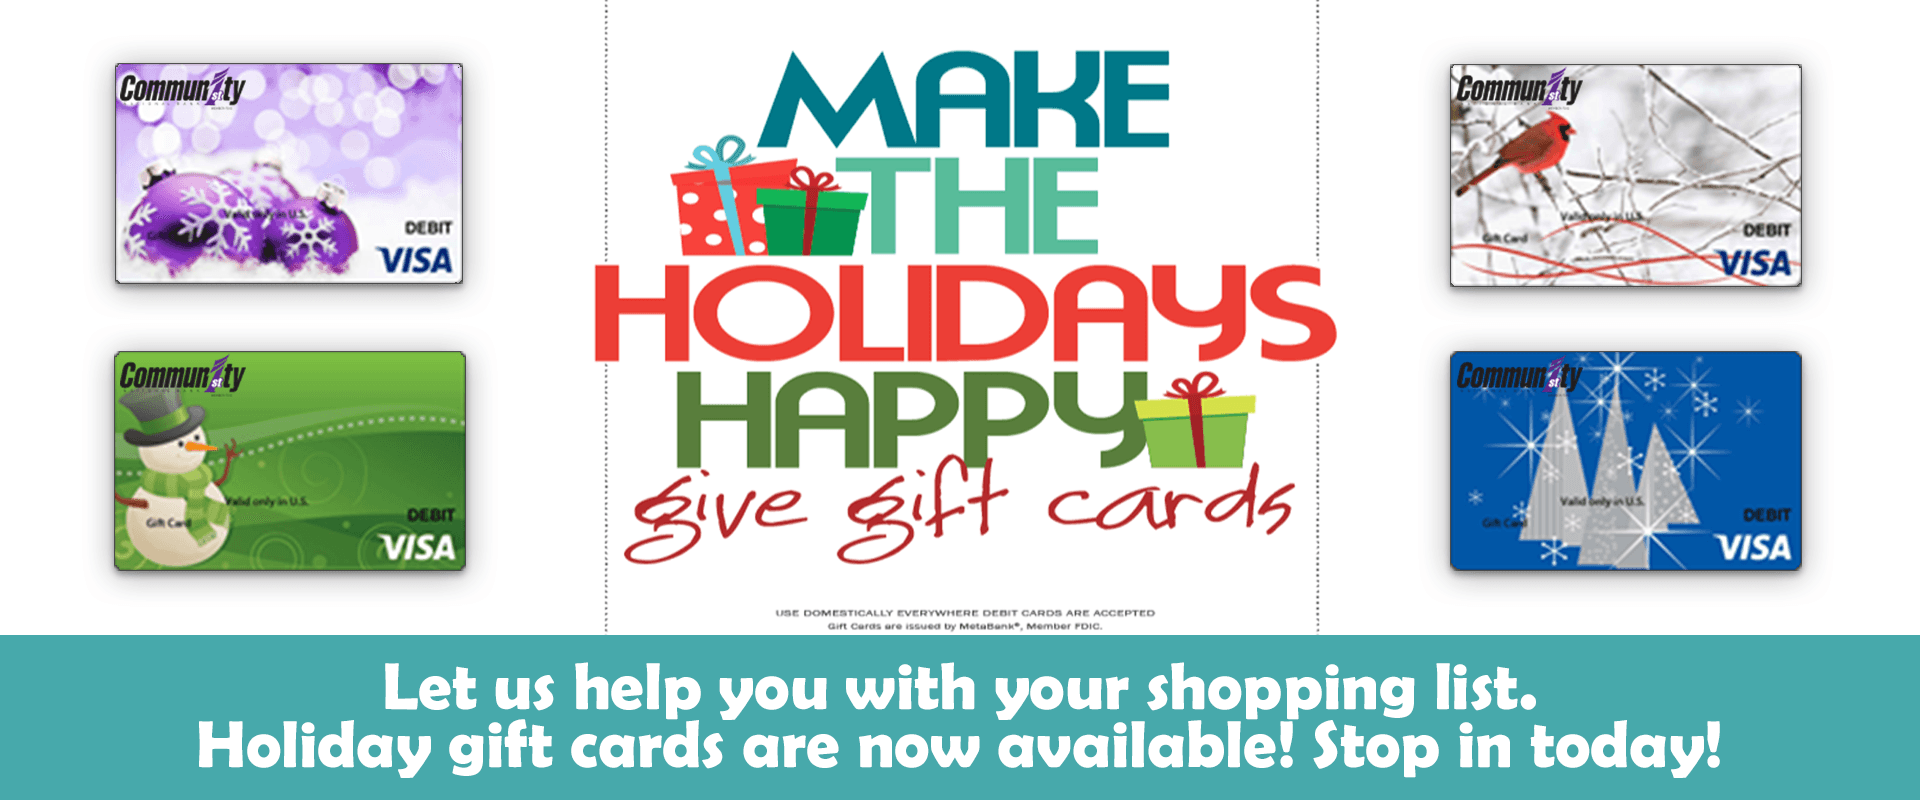 Make the holidays happy, give gift cards. Call or visit with a personal banker.